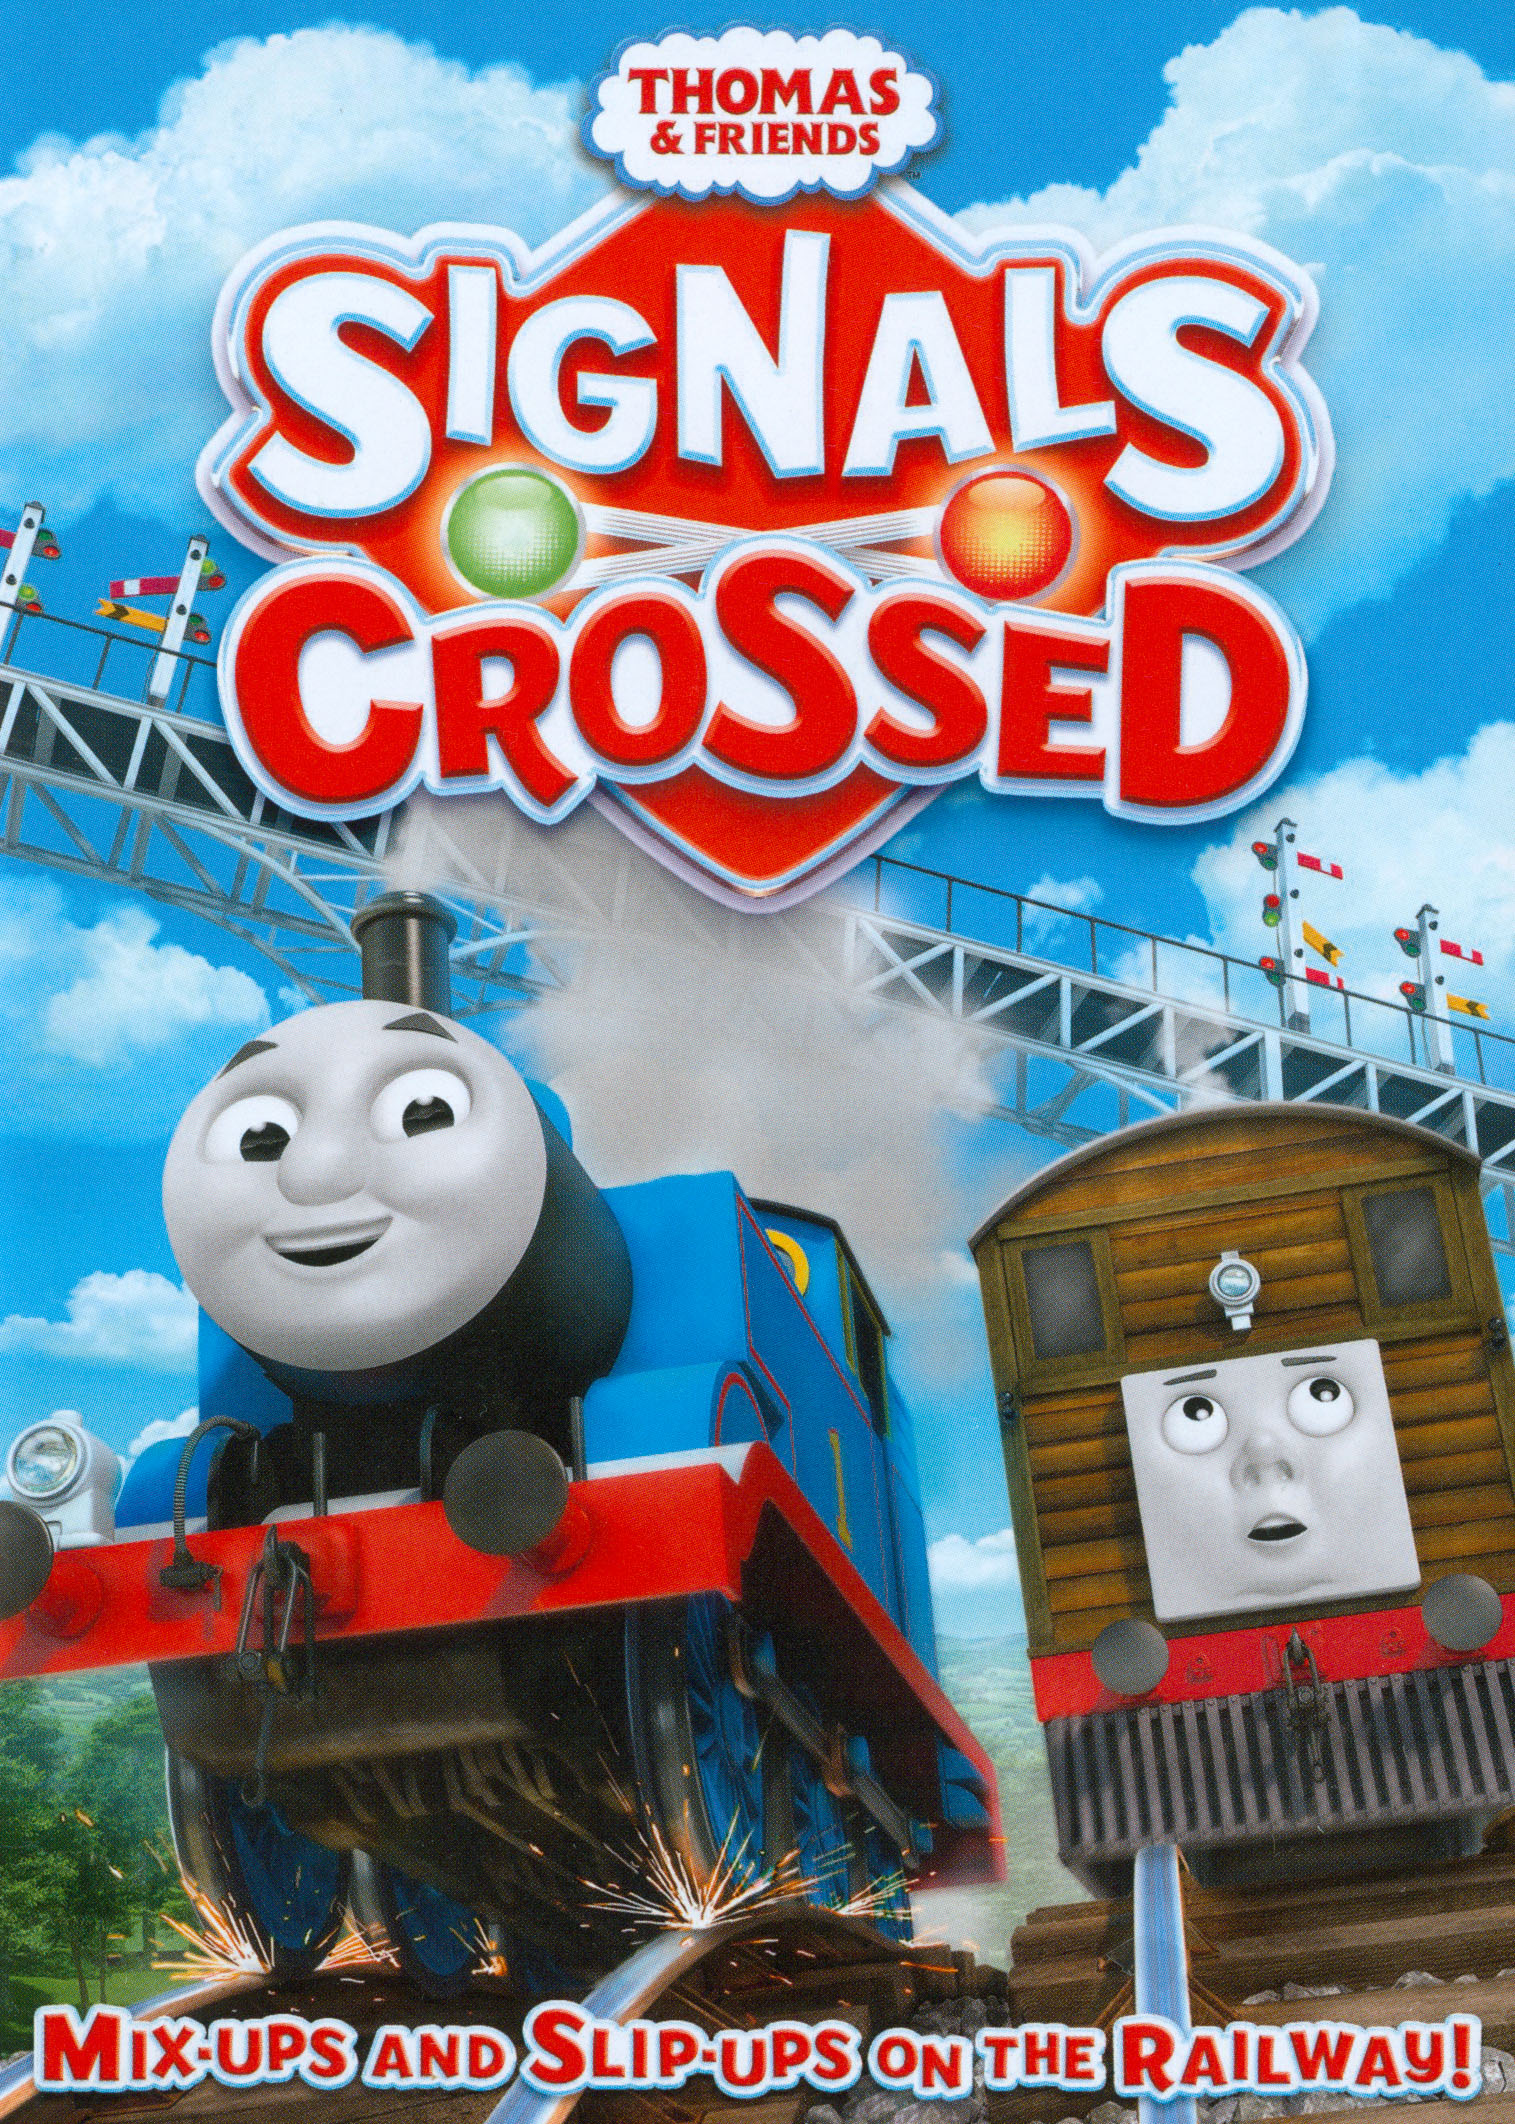 Thomas & Friends : Signals Crossed   [DVDRiP][FRENCH][MULTI]